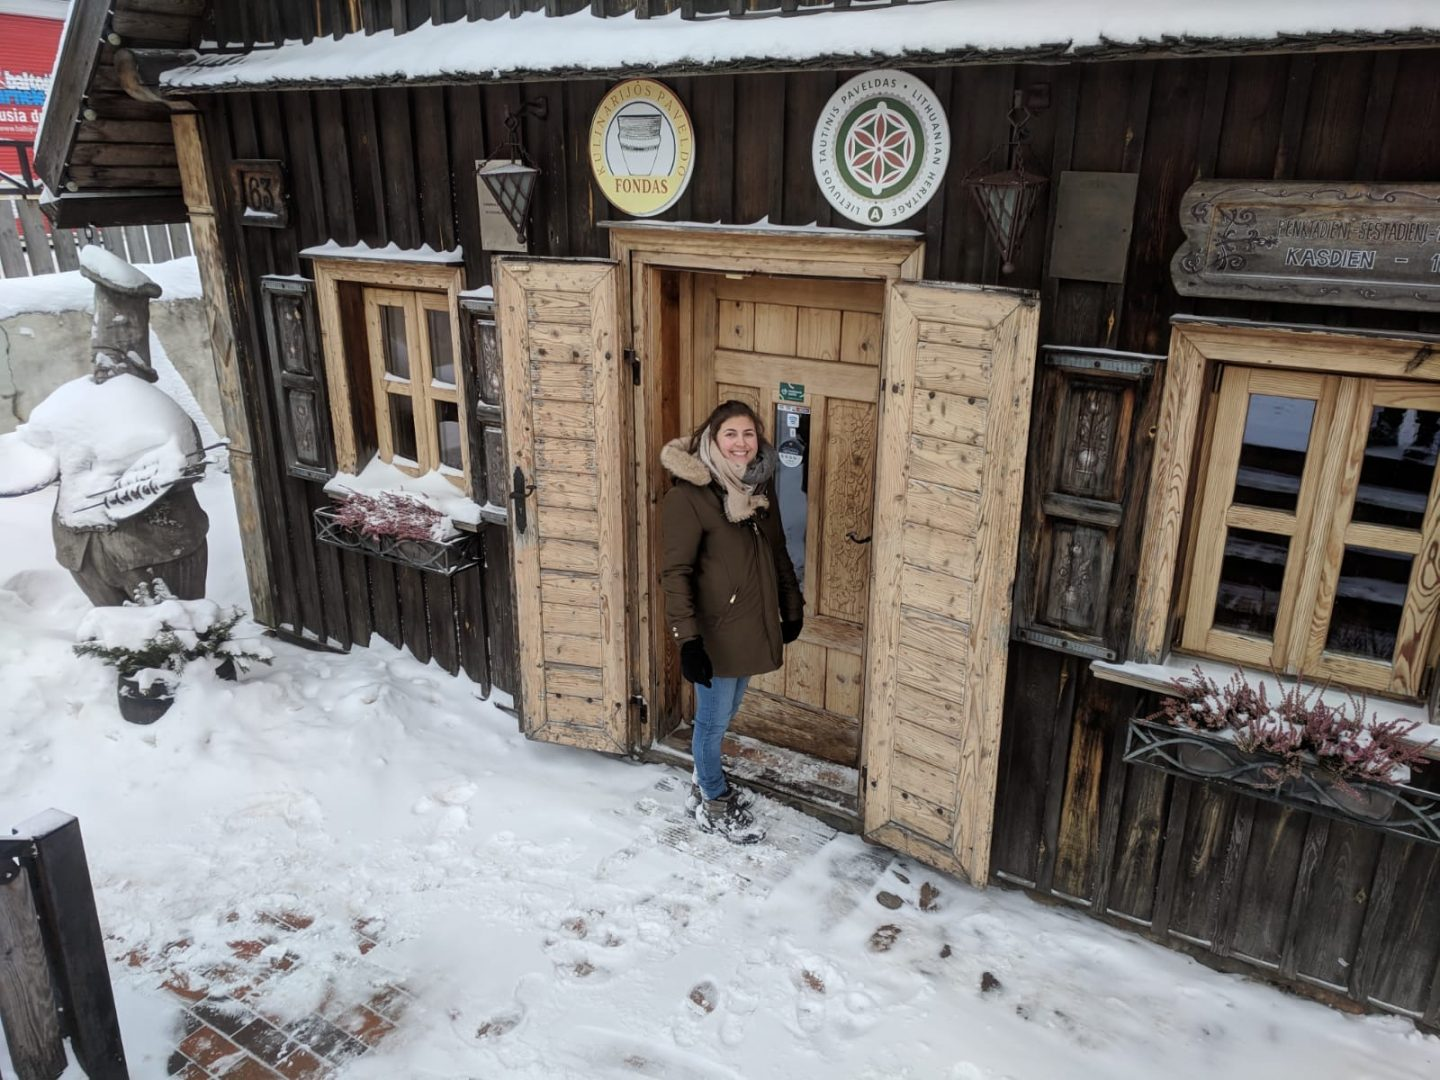 best restaurants in vilnius: Nell stood outside Senoji Kibininė in Trakai. She's stood next to a large wooden door, and snow is on the ground.